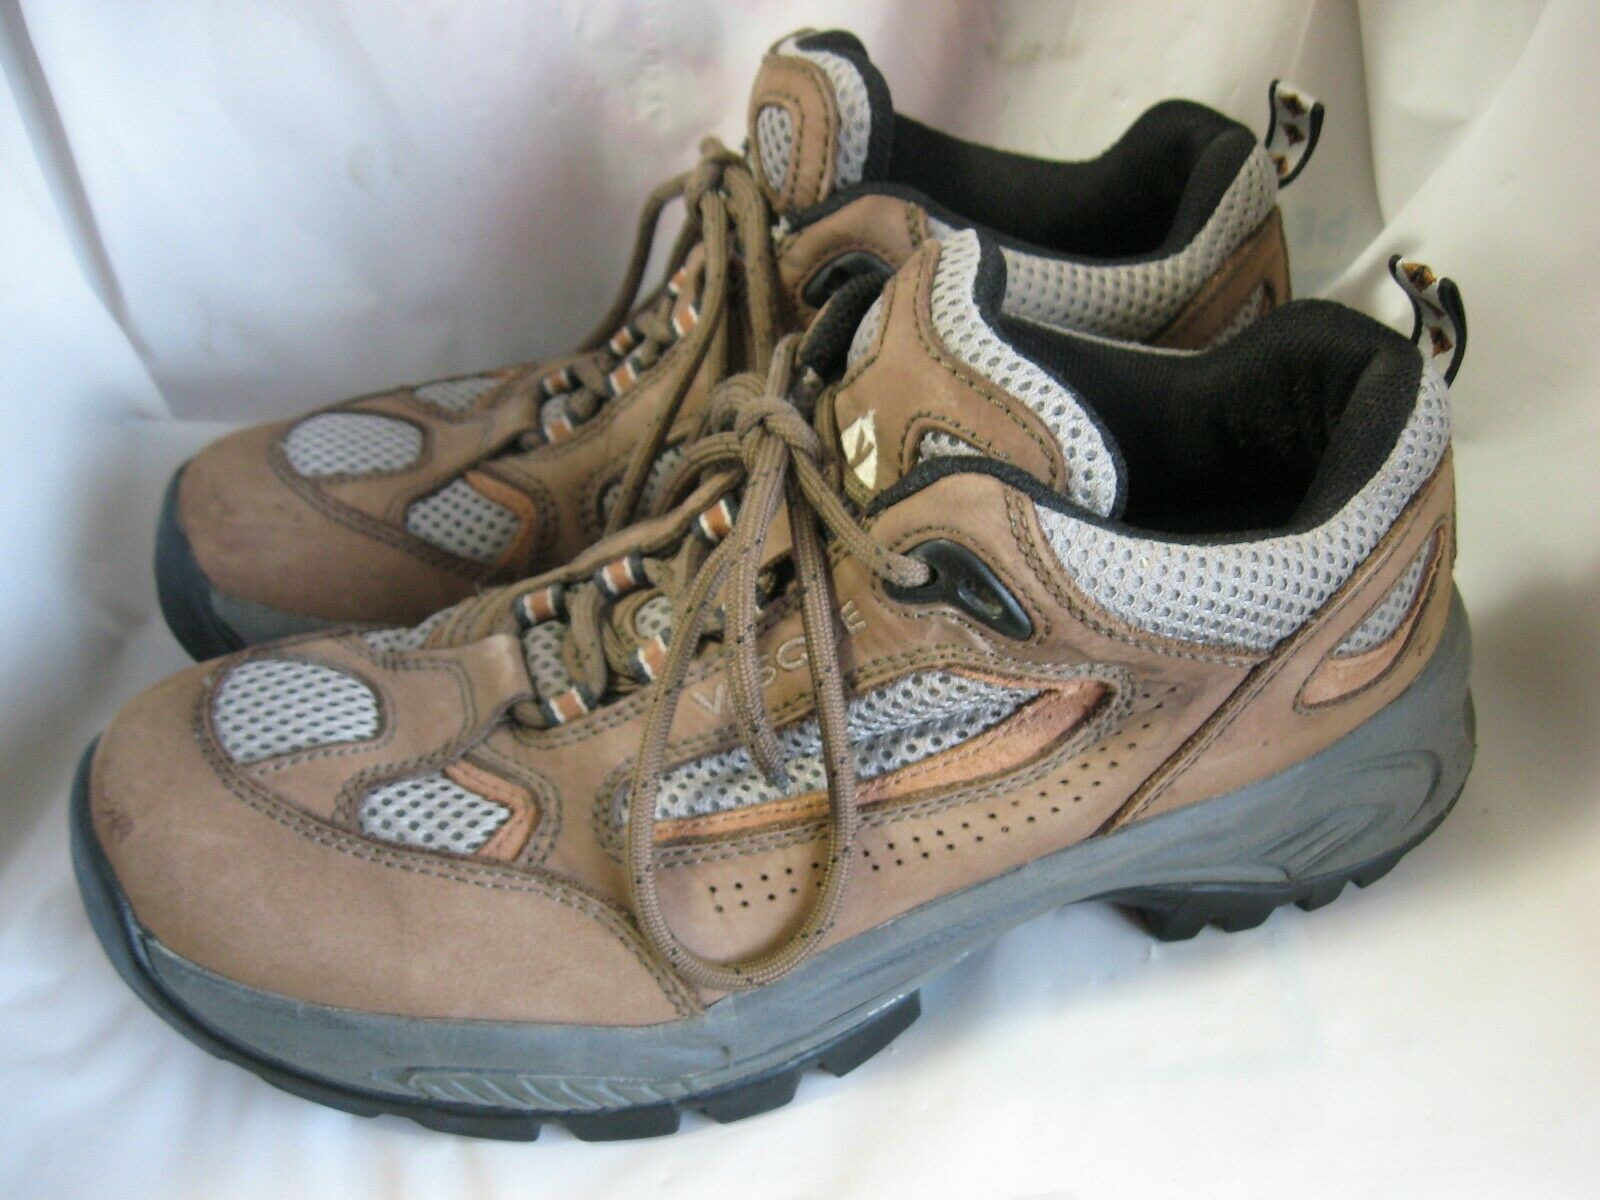 Mens 9 VASQUE Ankle High TRAIL RUNNING HIKING SHOES w  Vibram Soles